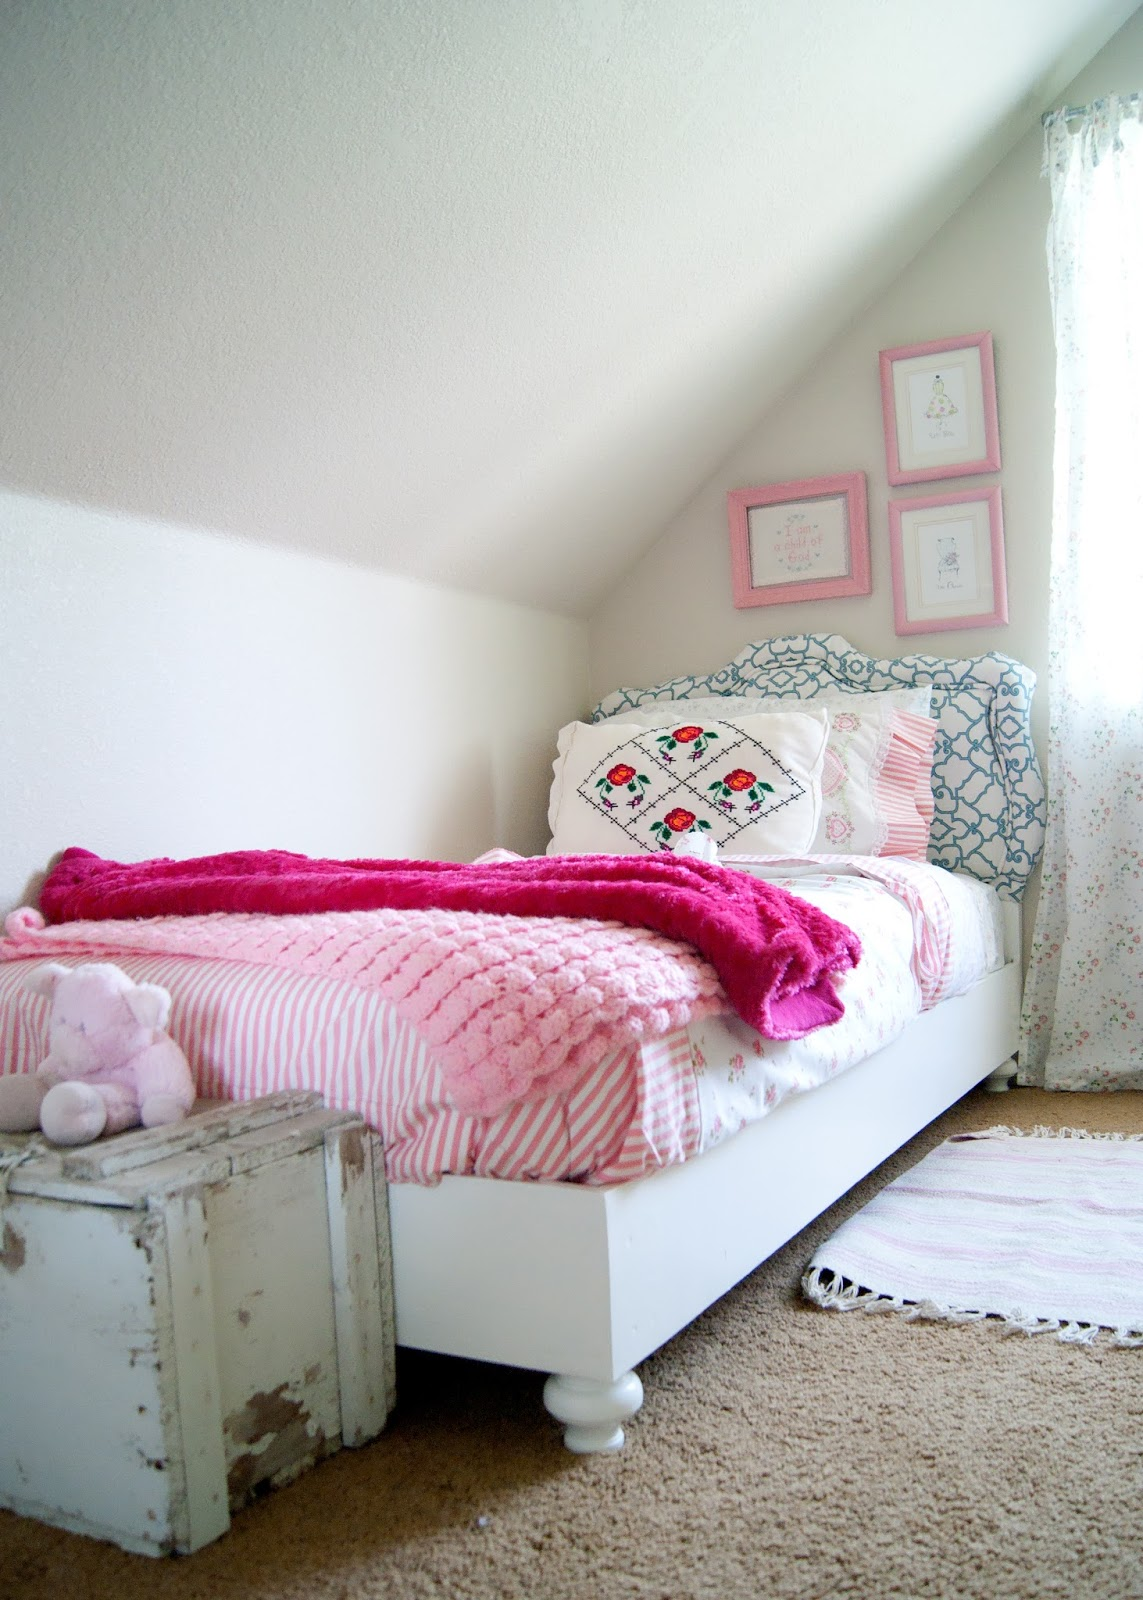 Bed corner - source list and cost